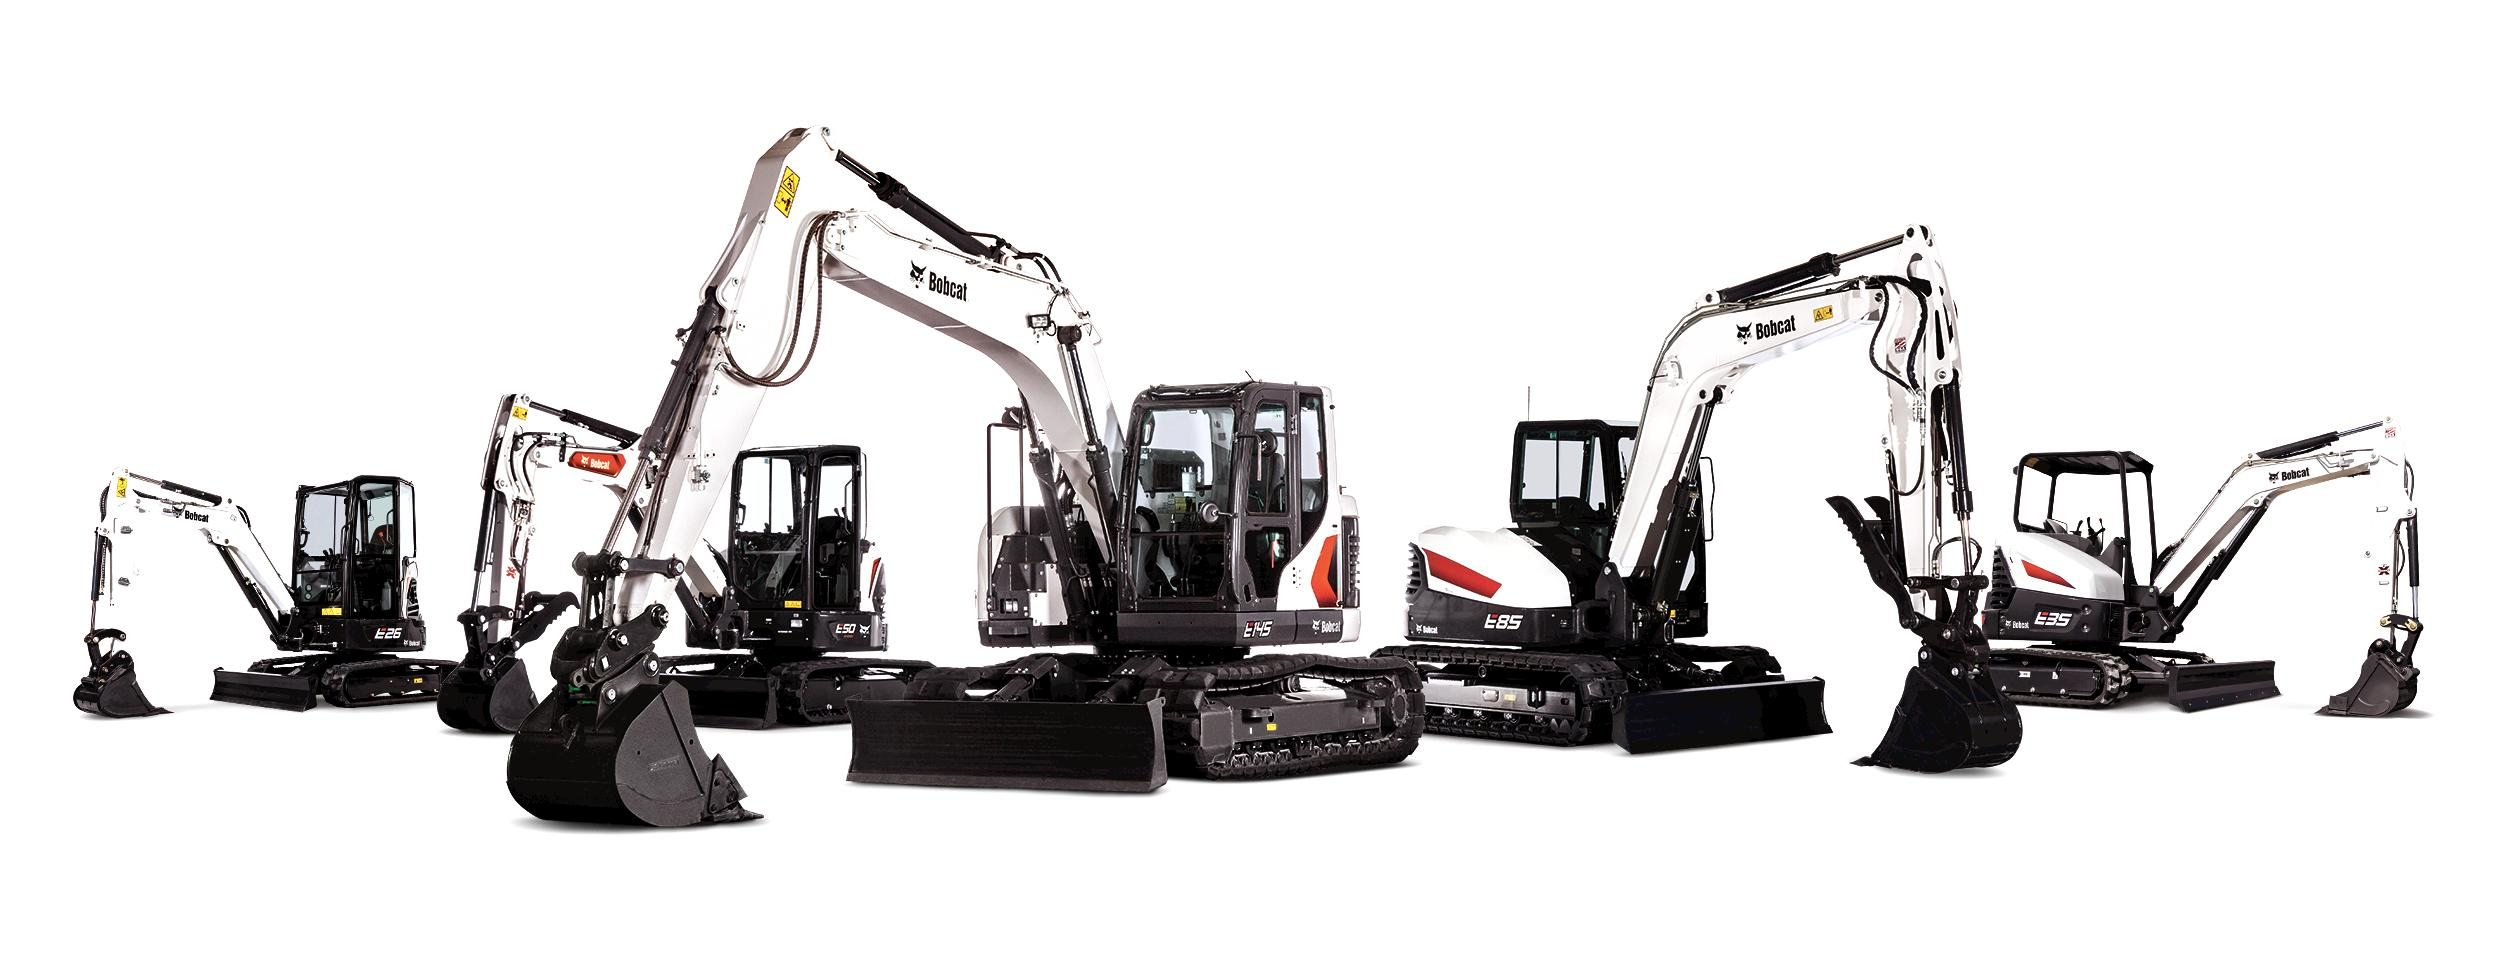 Line Up Of Five Bobcat Excavator Studio Images, From Compact To Large, Equipped With A Range Of Excavator Attachments